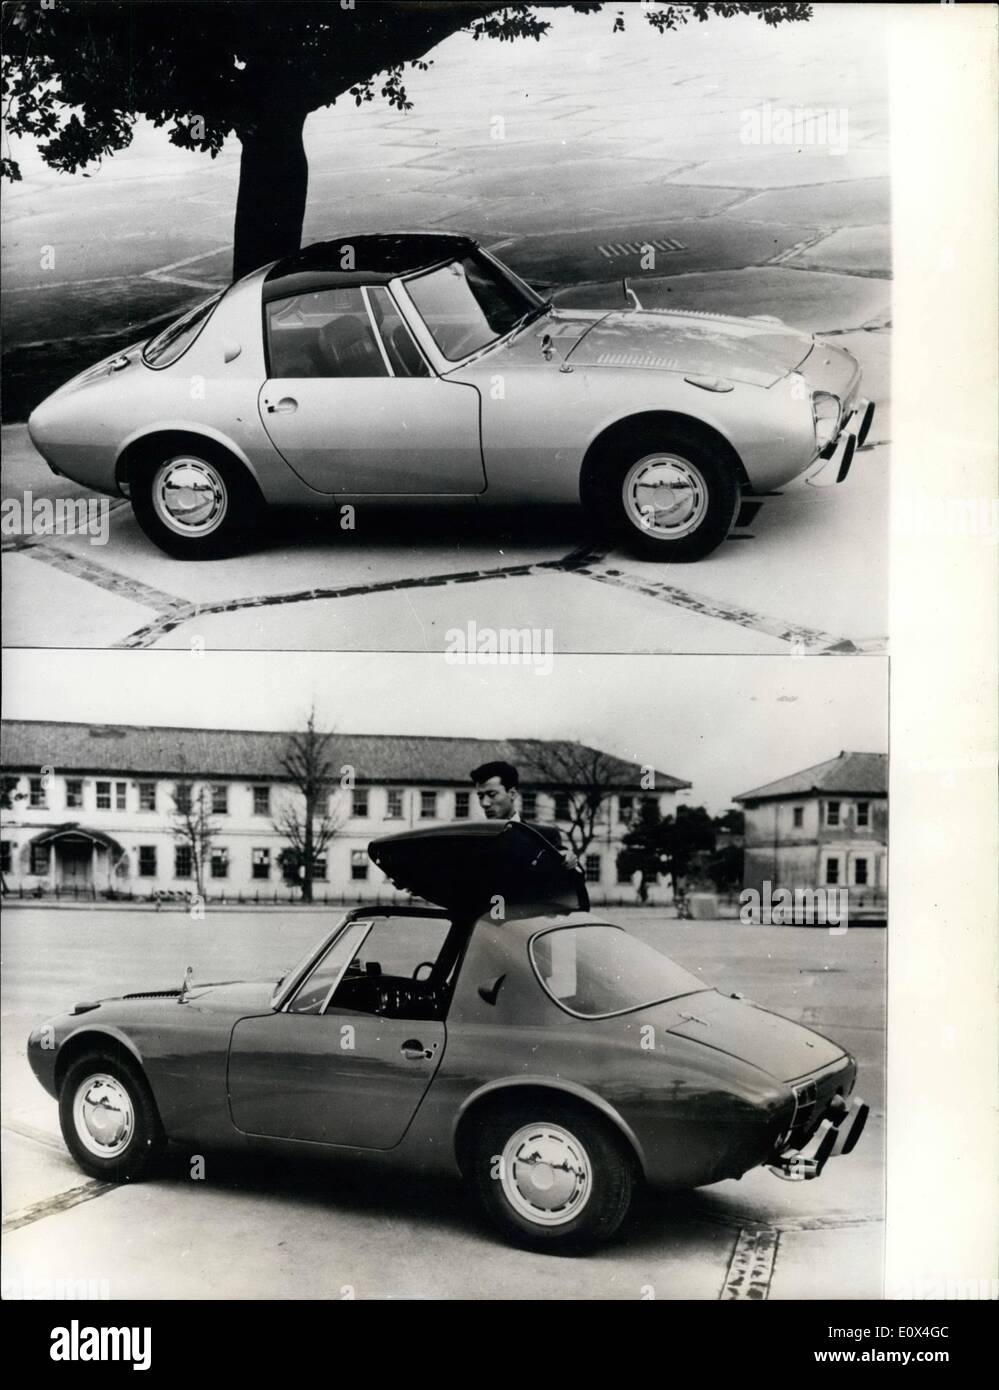 Apr. 04, 1965 - Introducing the new Japanese Sports Car... The Toyota Sports 800... The Toyota Sports Car - the 800 - goes on sale this week priced at 95... The car only weighs 580 kgs unladen - being made mainly of aluminium alloys. The car is 3,580 mm long and 1,465 mm wide - and is of frameless monocoque construction - and under strain the shell will not twist - shiver or shake. It has a model 2U air cooled, 2 cylinder engine of 790cc. with an output of 45 bhp at 5,400 rpm. Compression ratio is 9.0 - 1 - and twin carburretor has been fitted - Stock Image